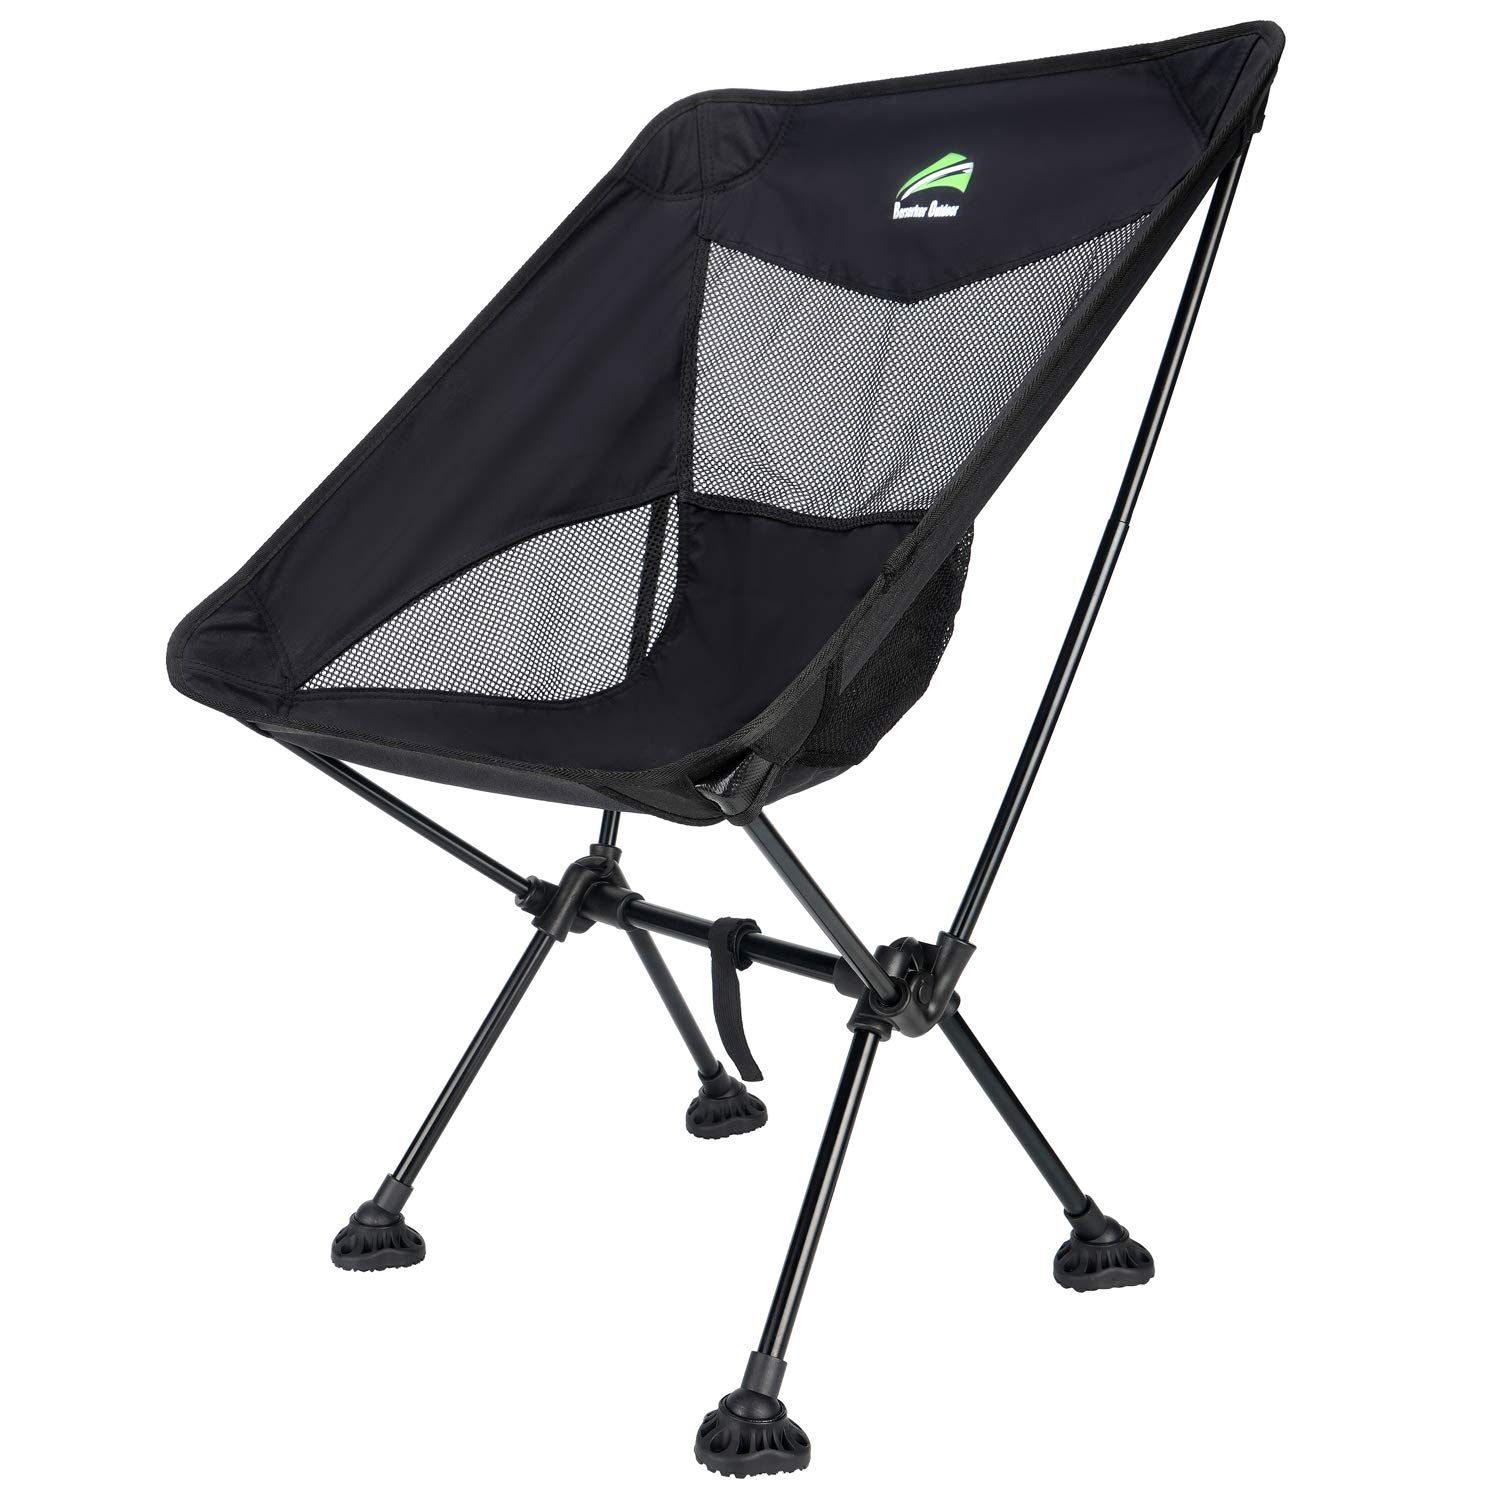 Berserker Outdoor Ultralight Compact Folding Camping Chairs Portable Lightweight Backpack Hiking Chair With All Terrain Large Feet